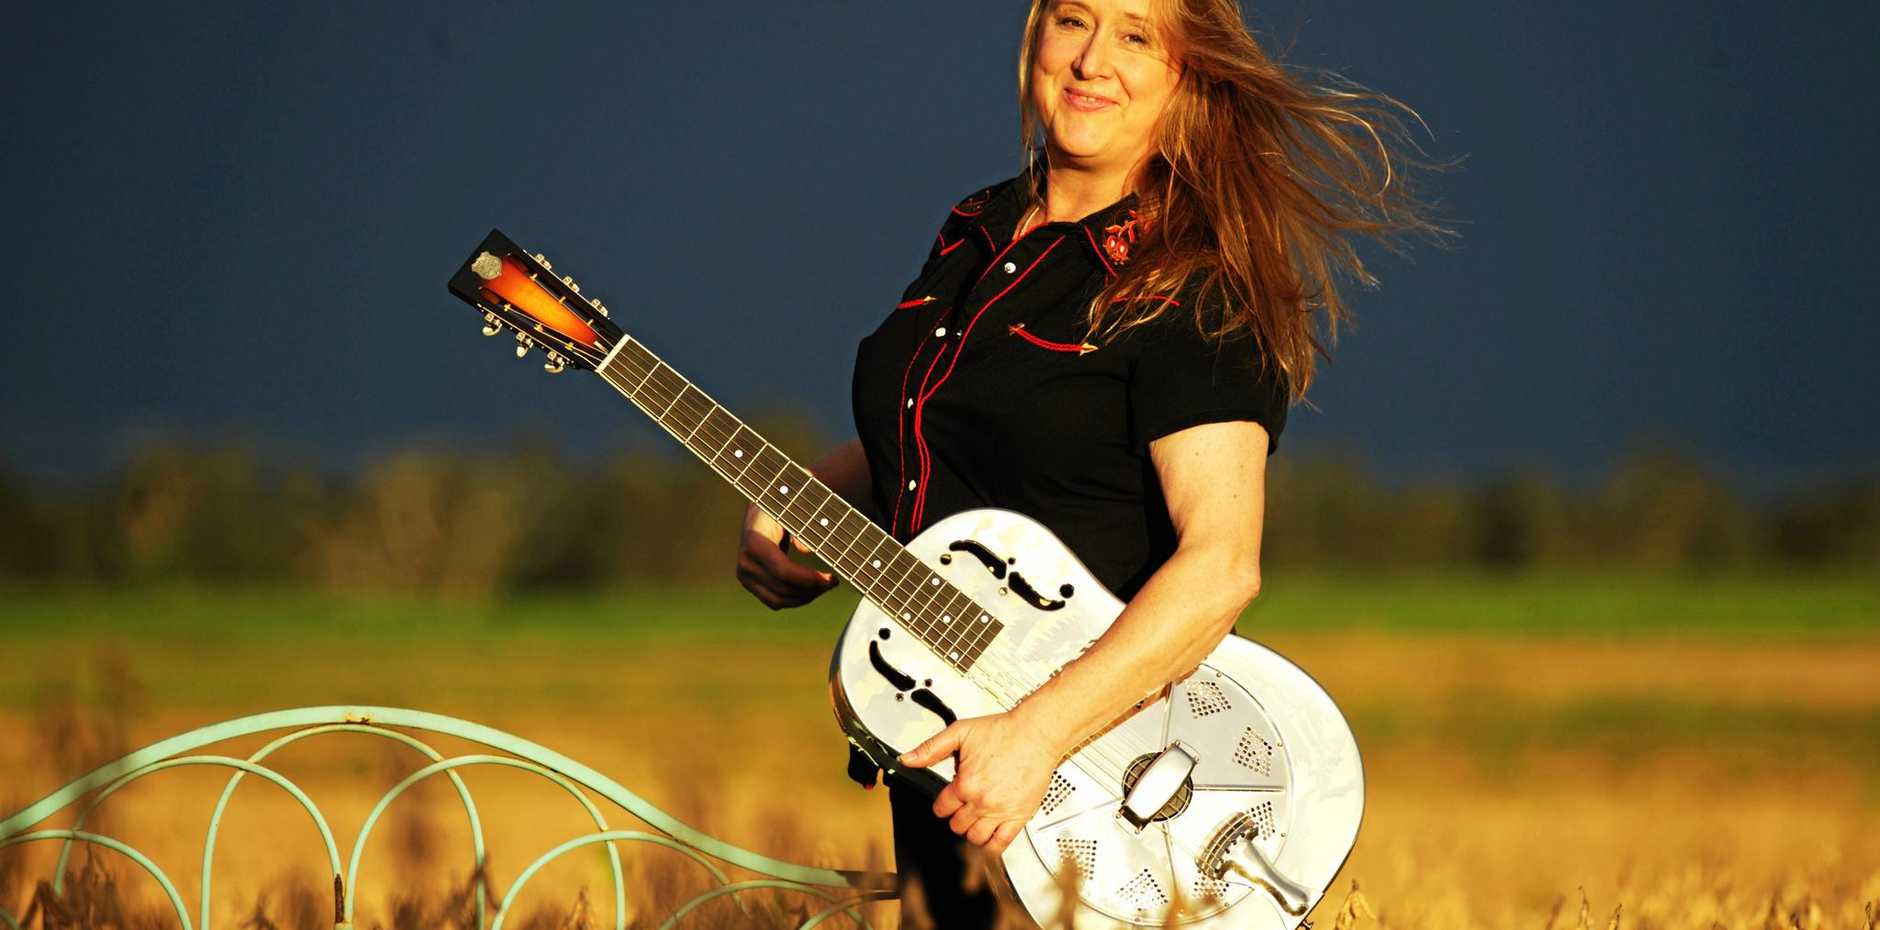 Catch the incredible Fiona Boyes live at Yamba's Pacific Hotel on Sunday afternoon.